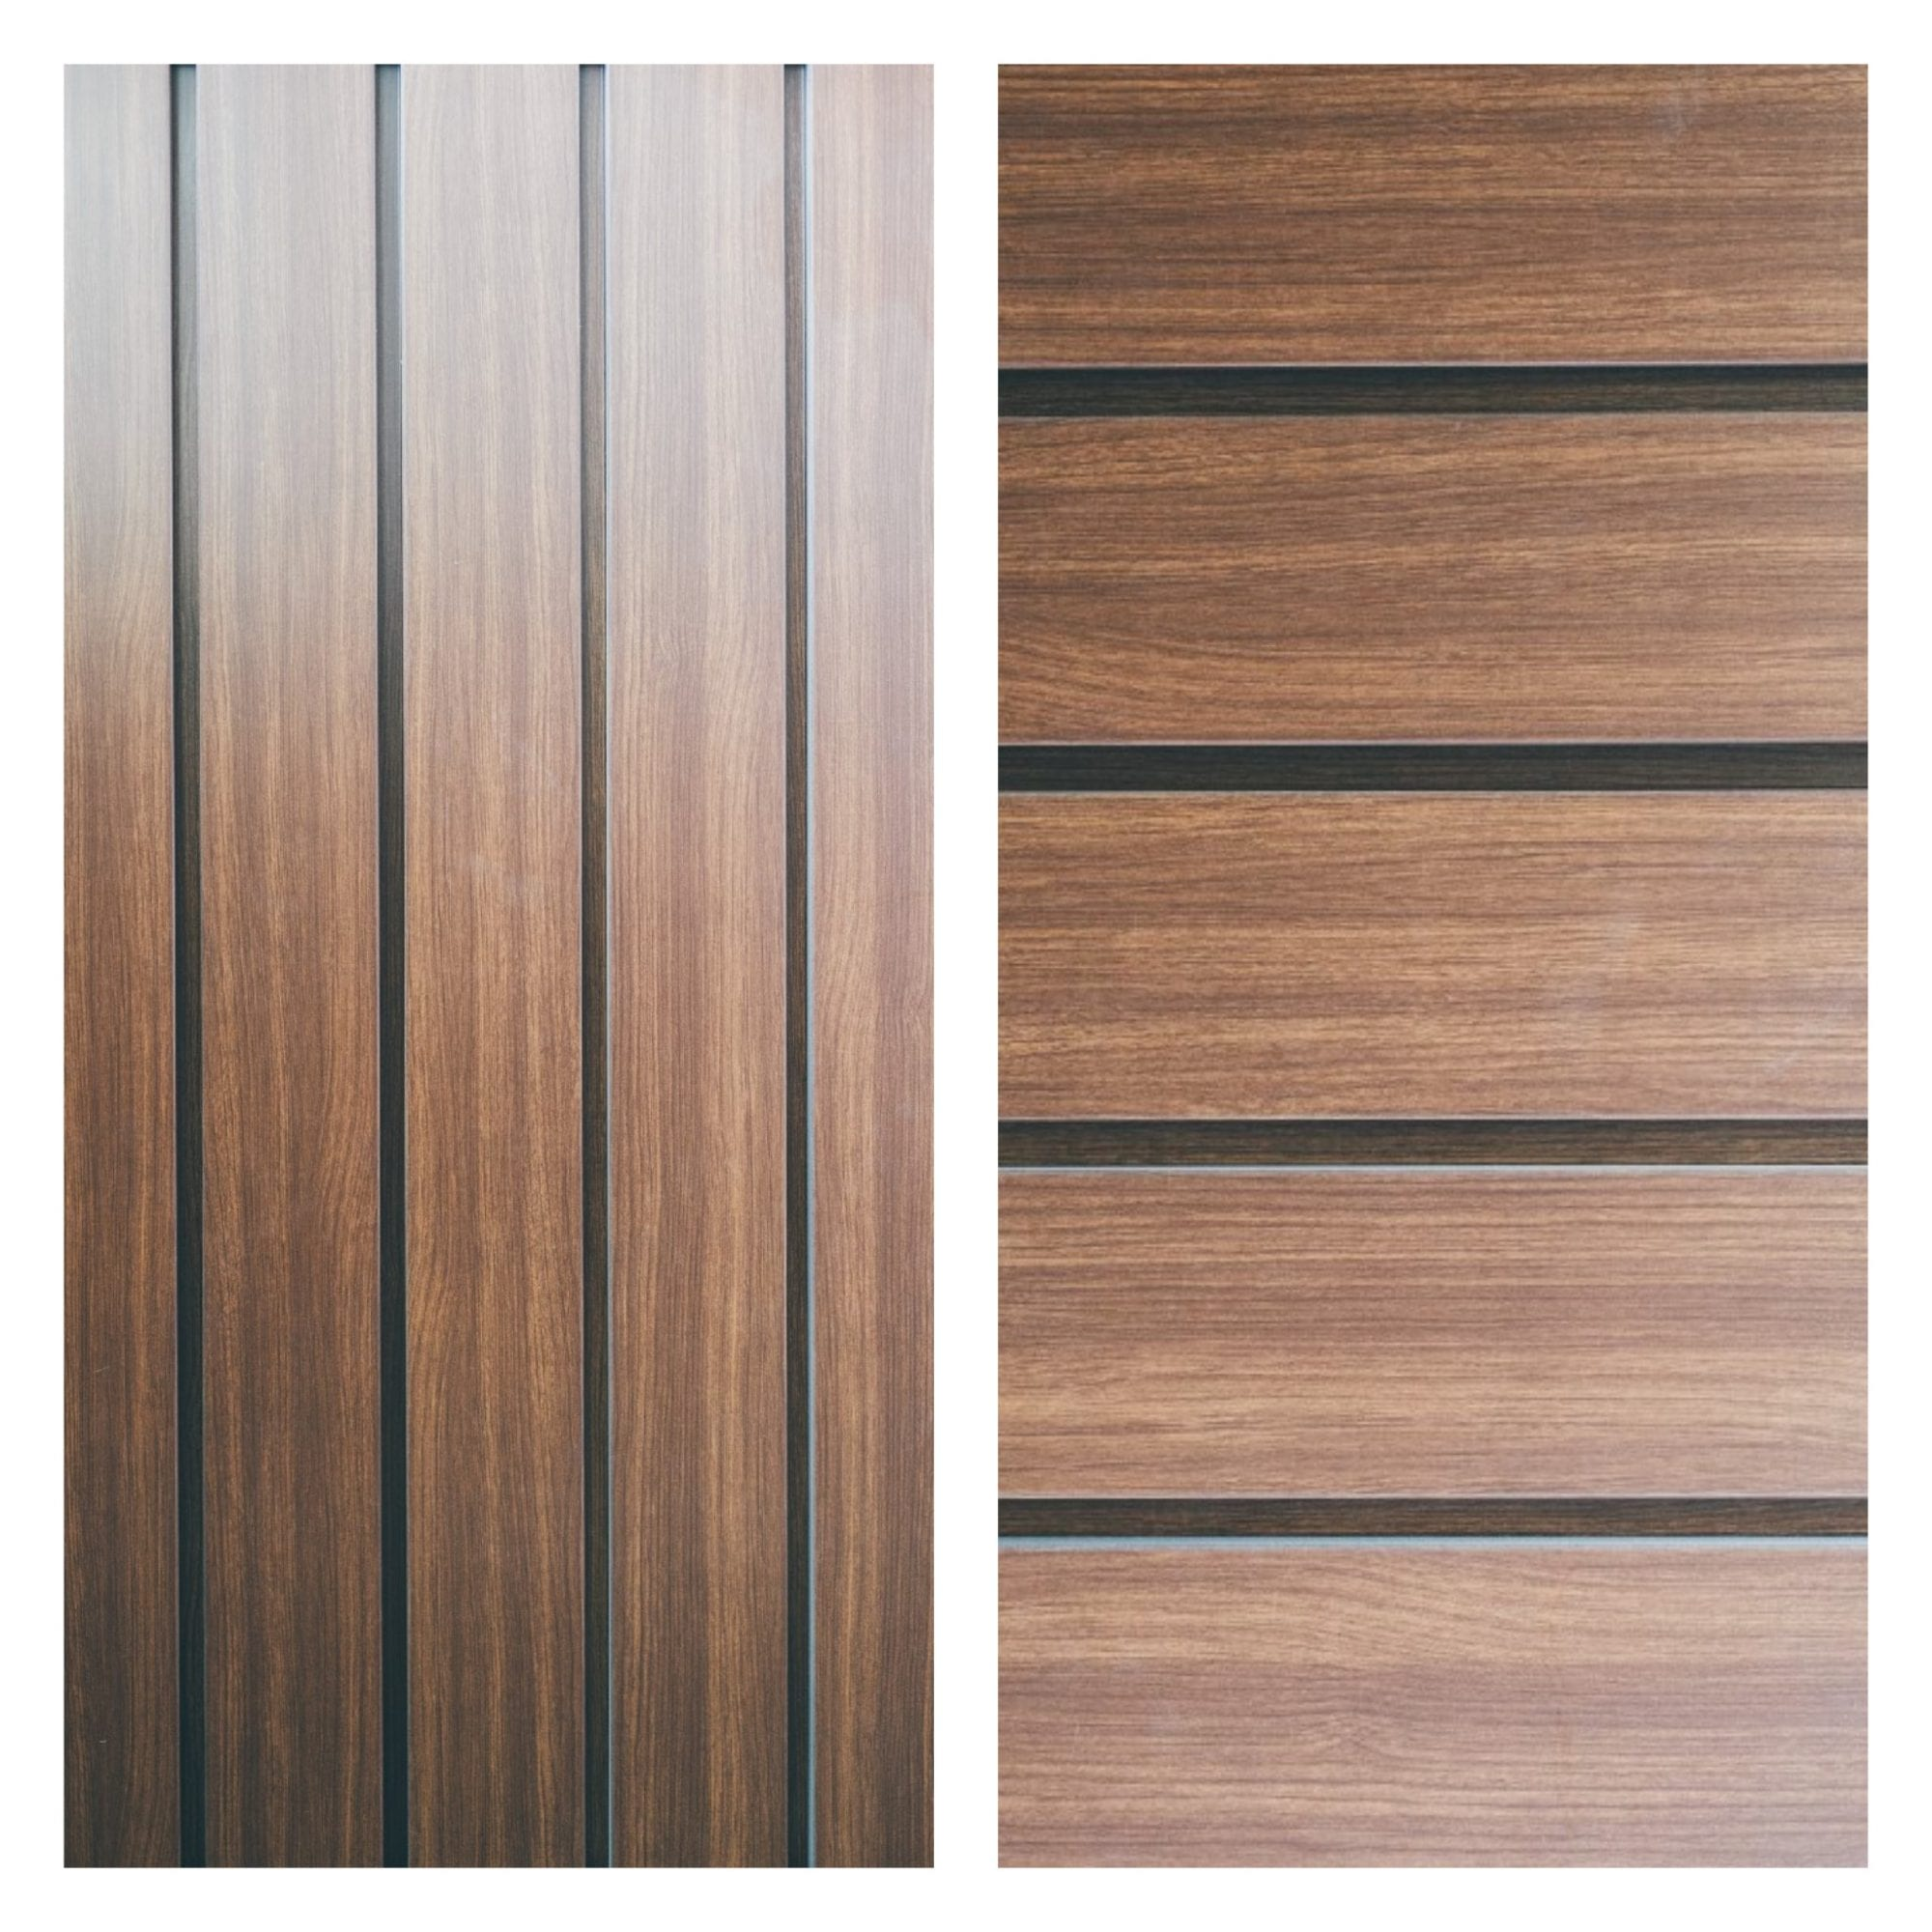 Prefinished woodgrain metal panels alura imark for Horizontal wood siding panels